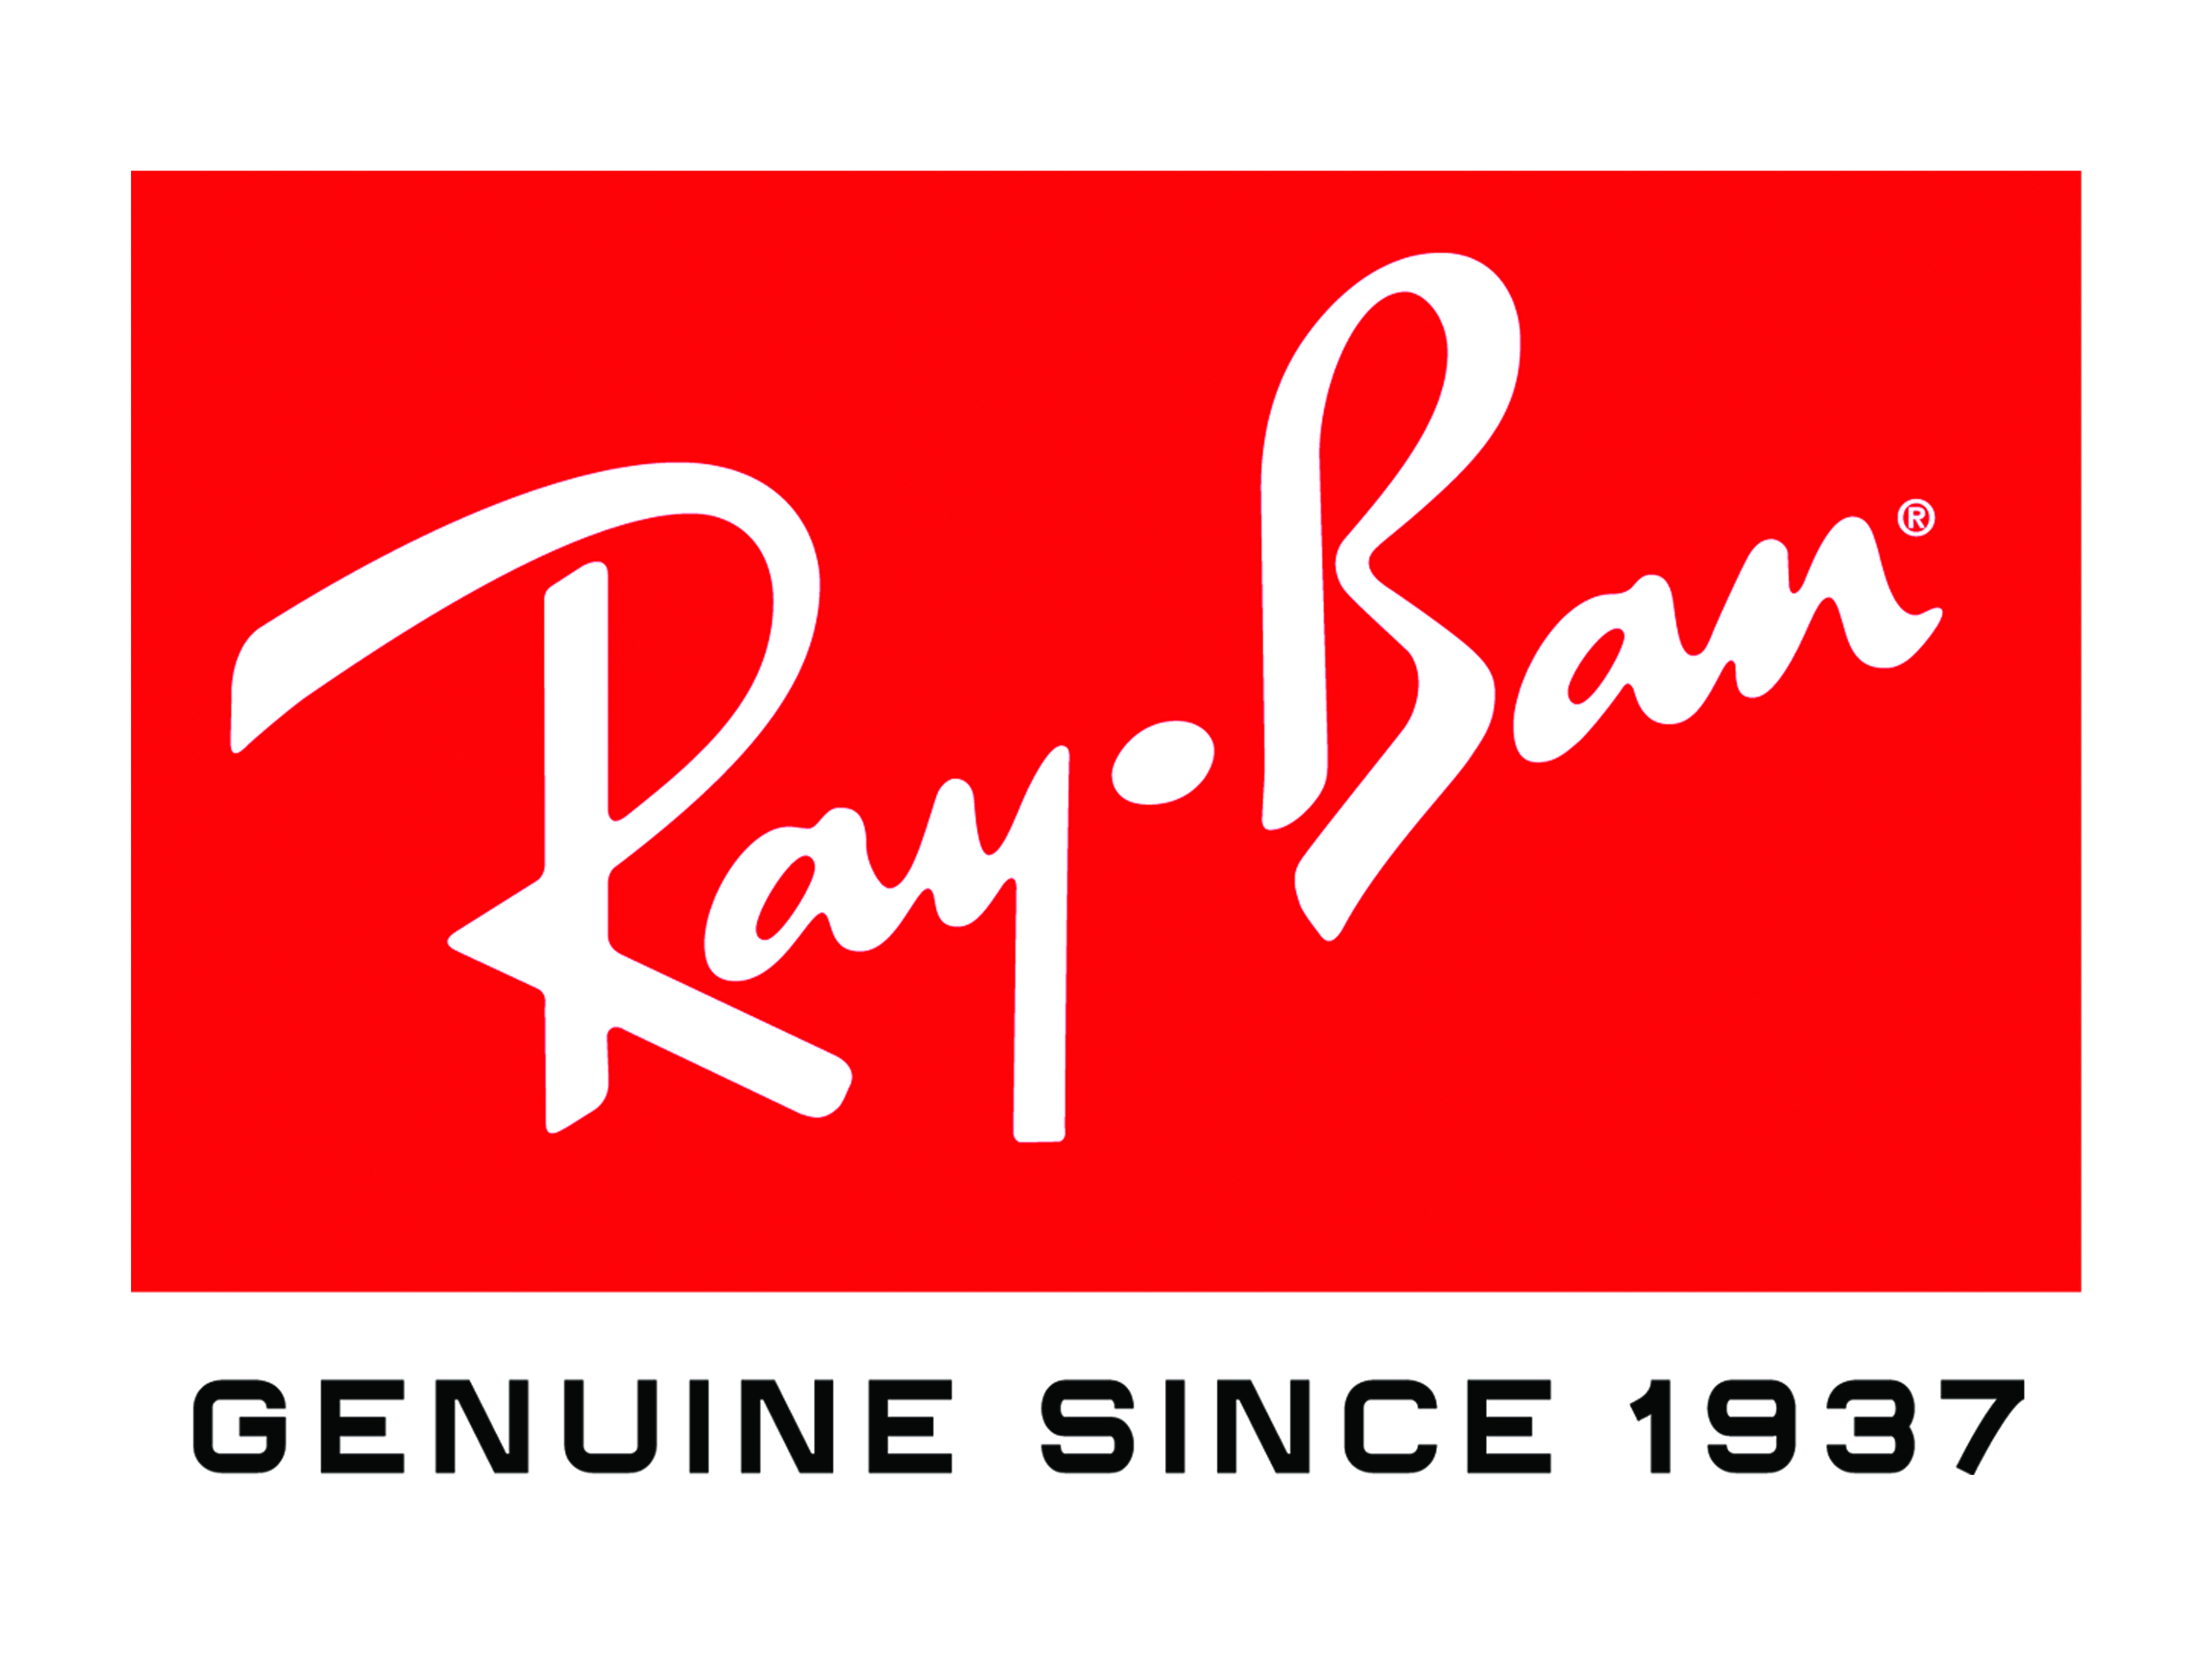 2973cc7ee96 Ray Ban Company Contact « One More Soul